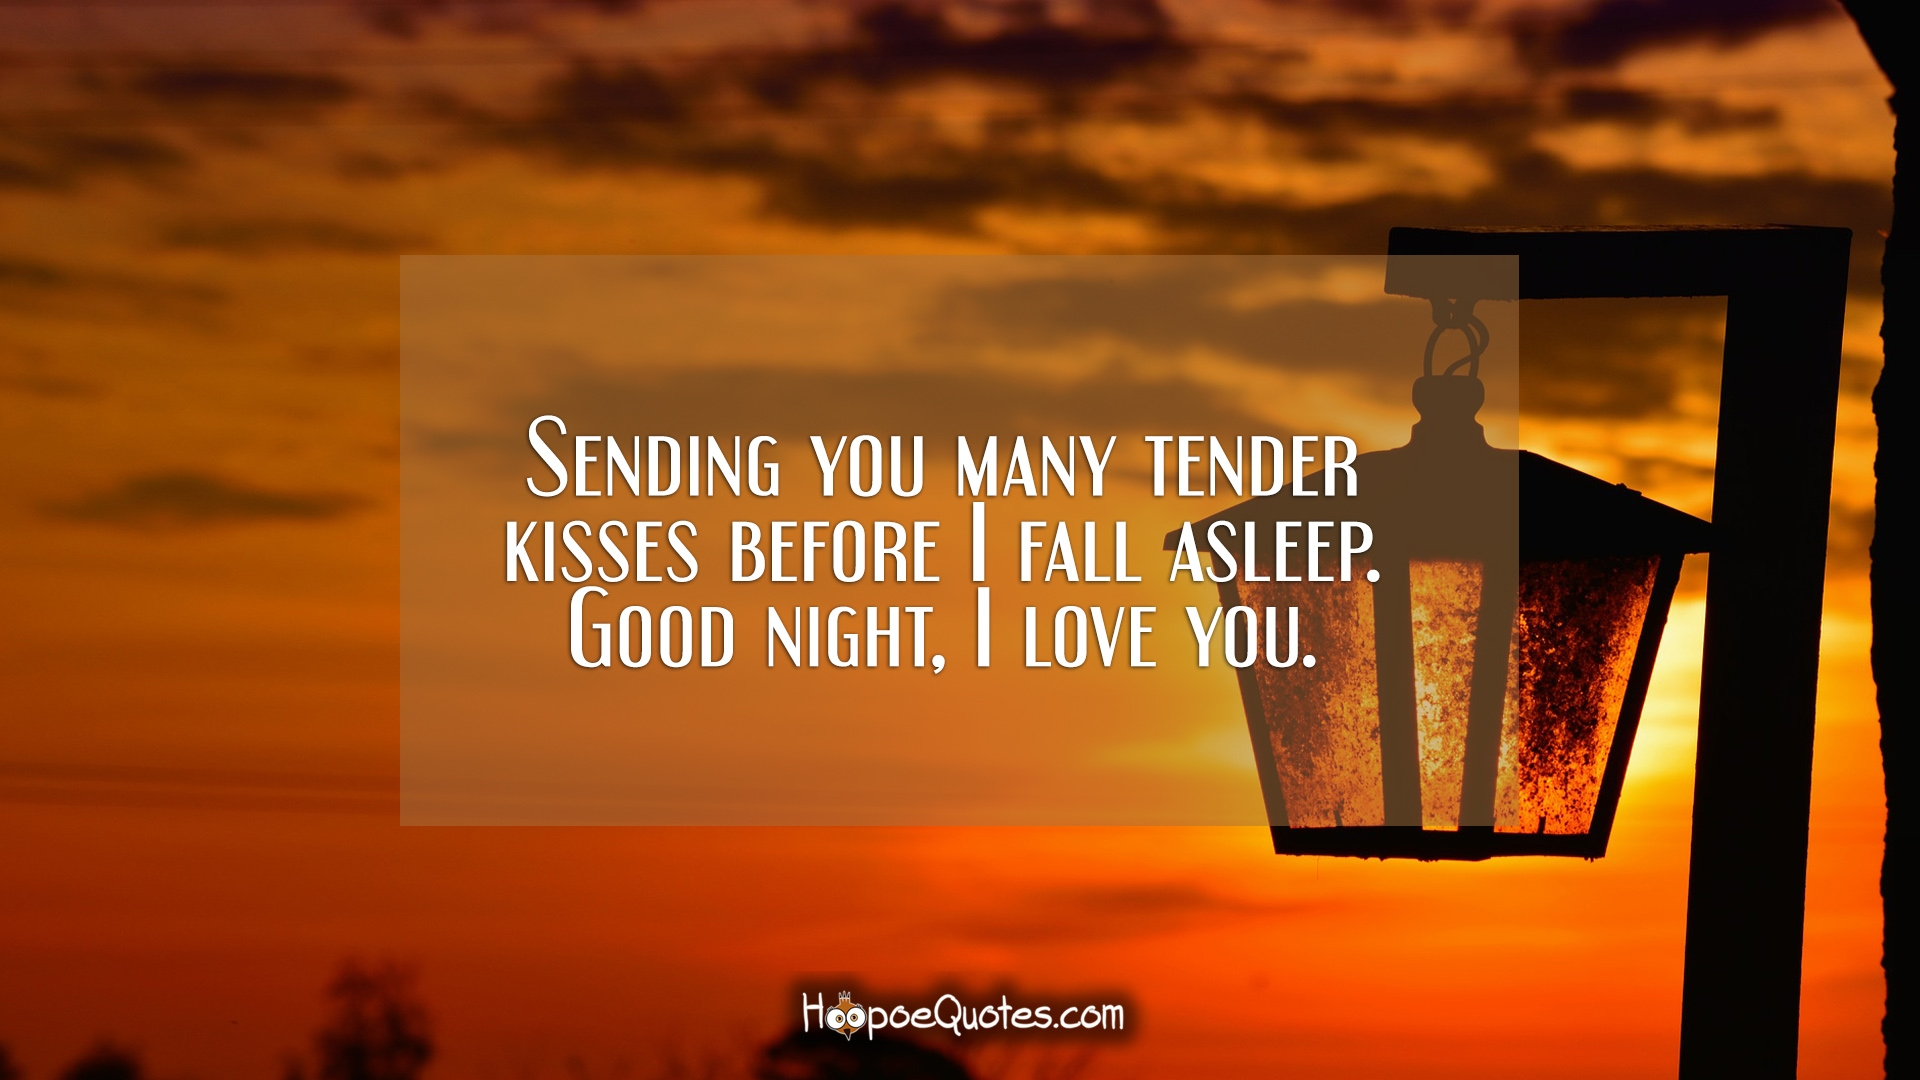 Sending you many tender kisses before I fall asleep  Good night, I